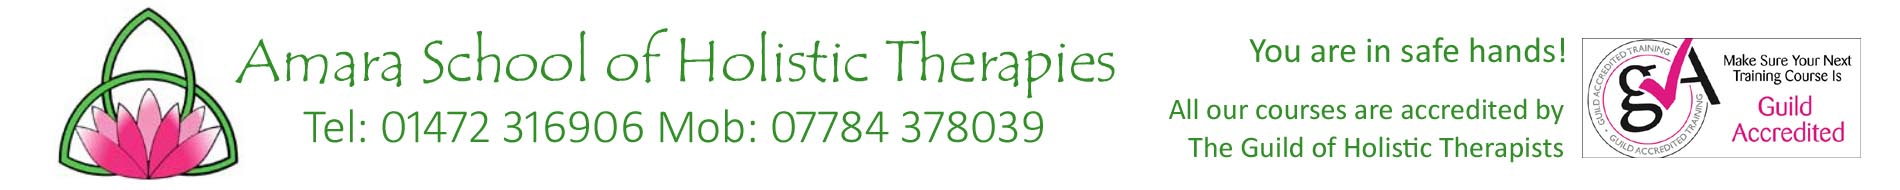 Amara school of holistic therapies